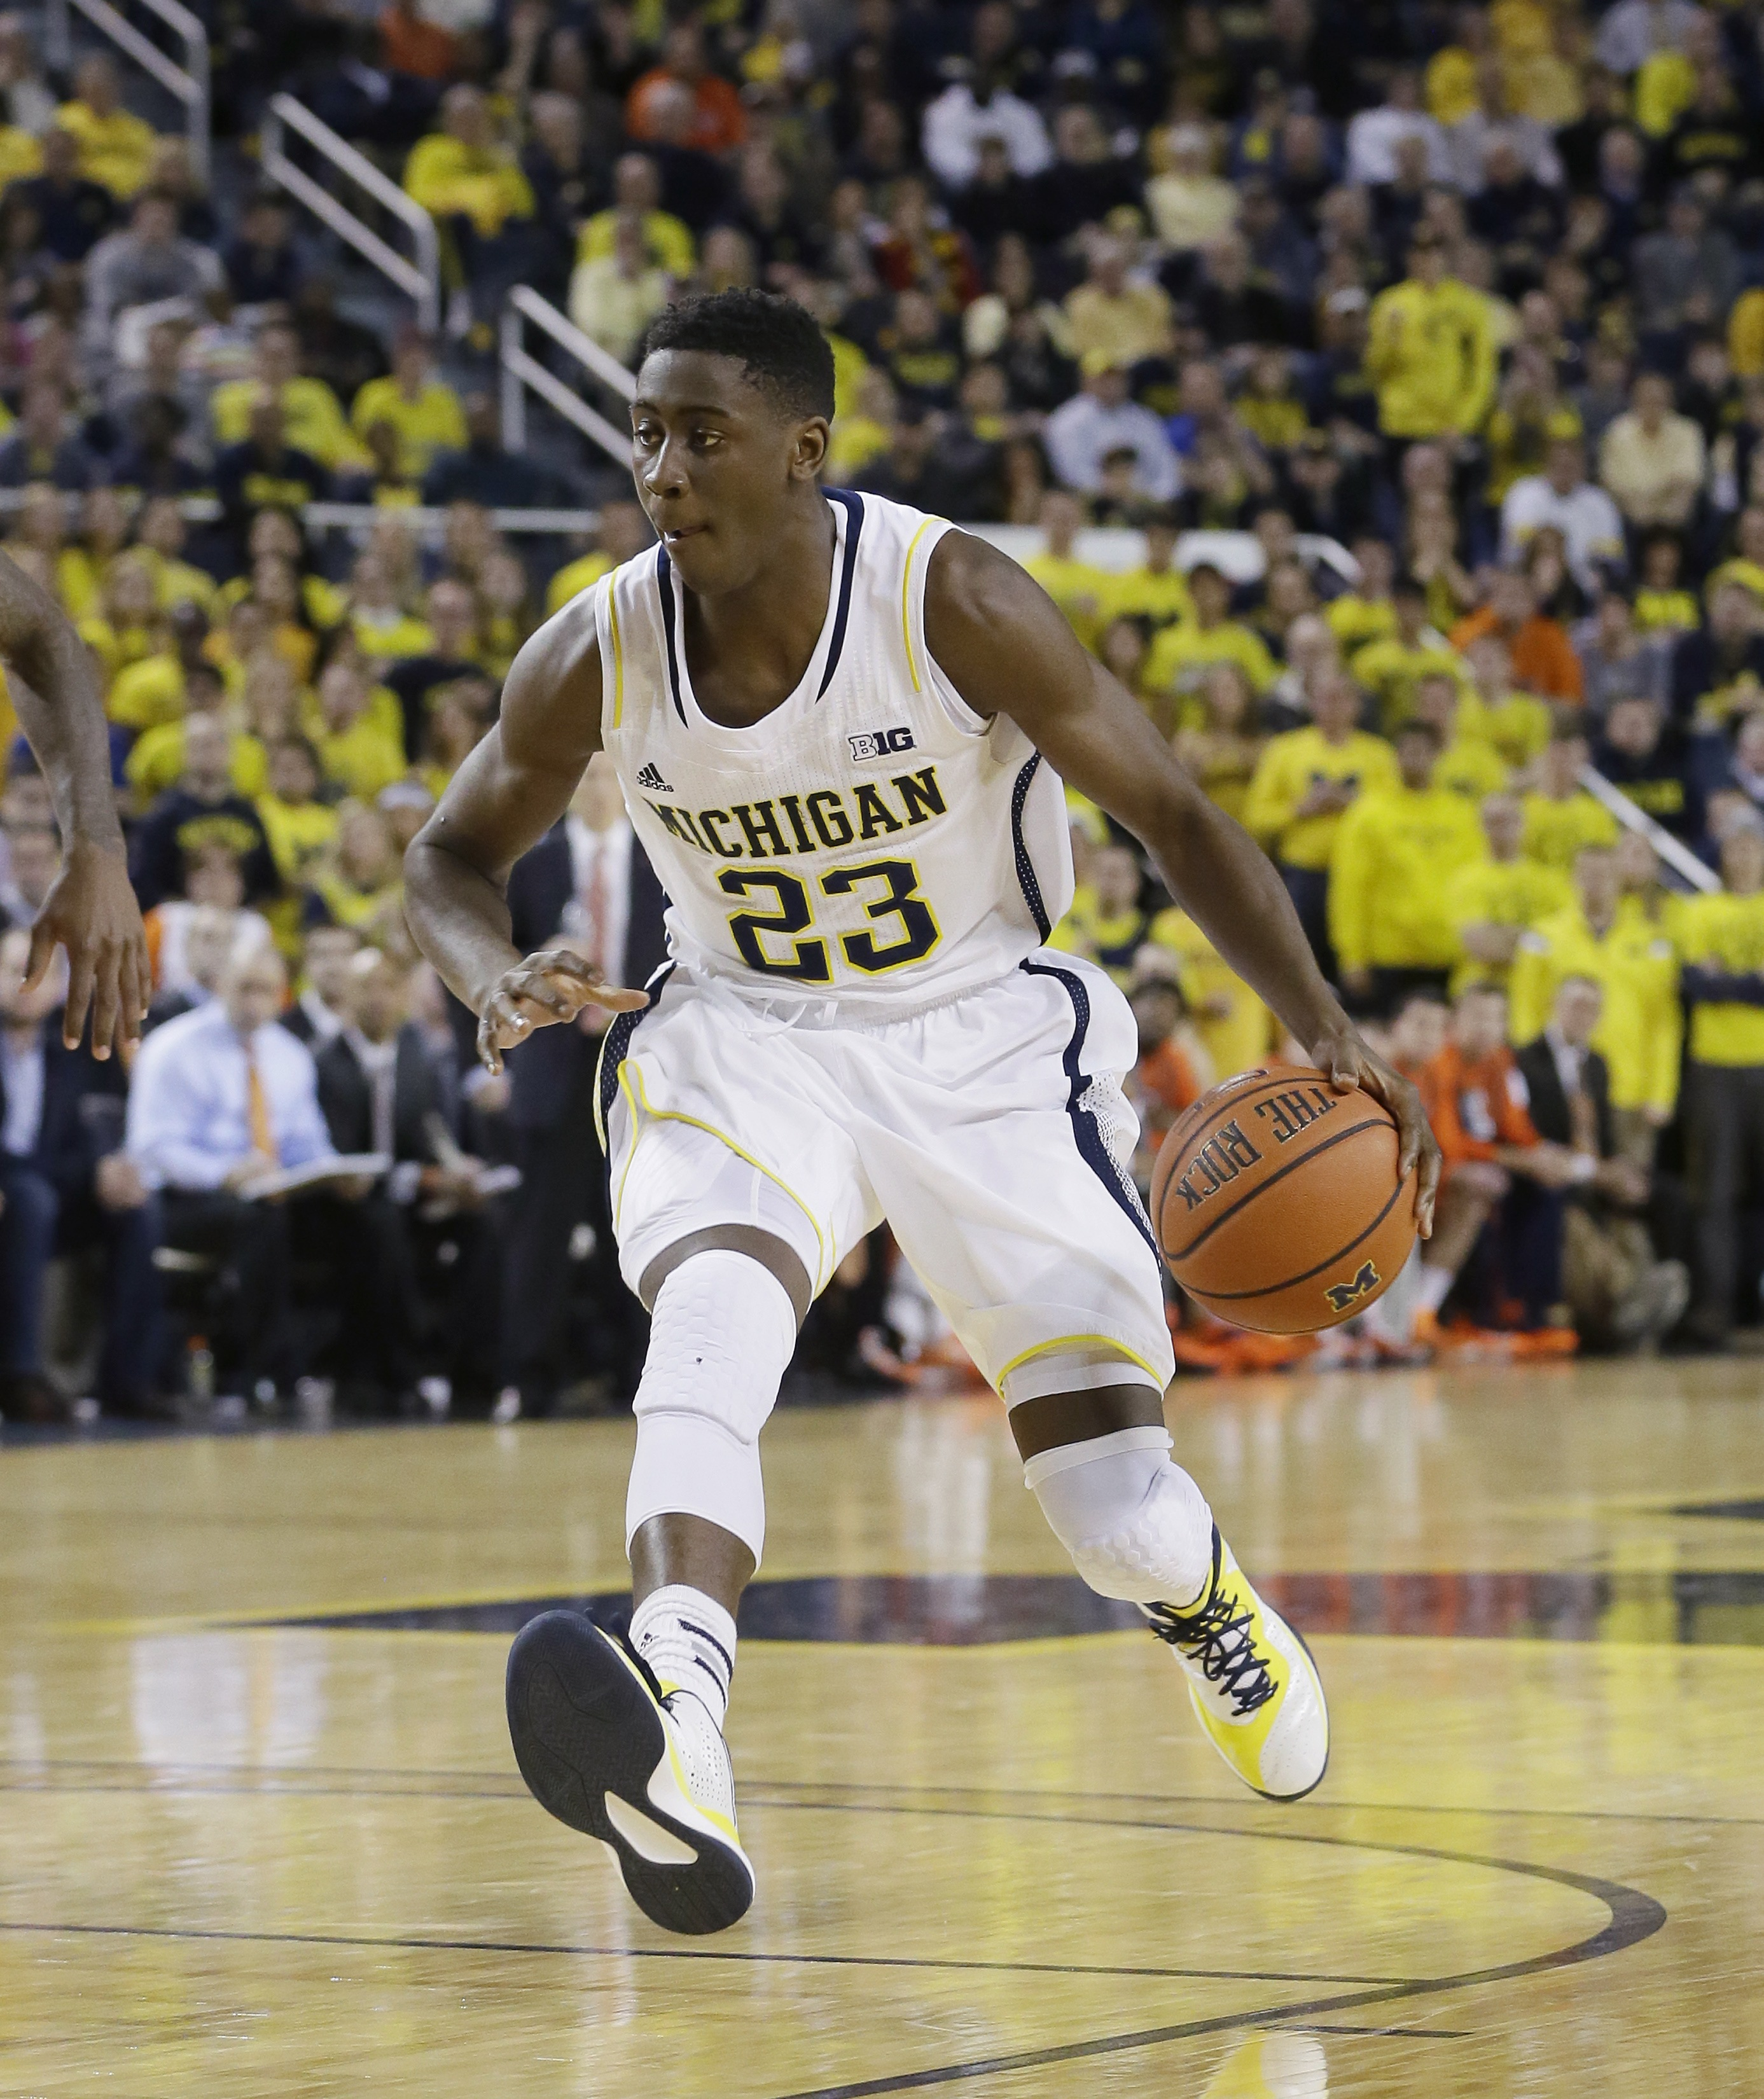 Michigan guard Caris LeVert controls the ball during the second half of an NCAA college basketball game against Illinois in Ann Arbor, Mich., Tuesday, Dec. 30, 2014. (AP Photo/Carlos Osorio)